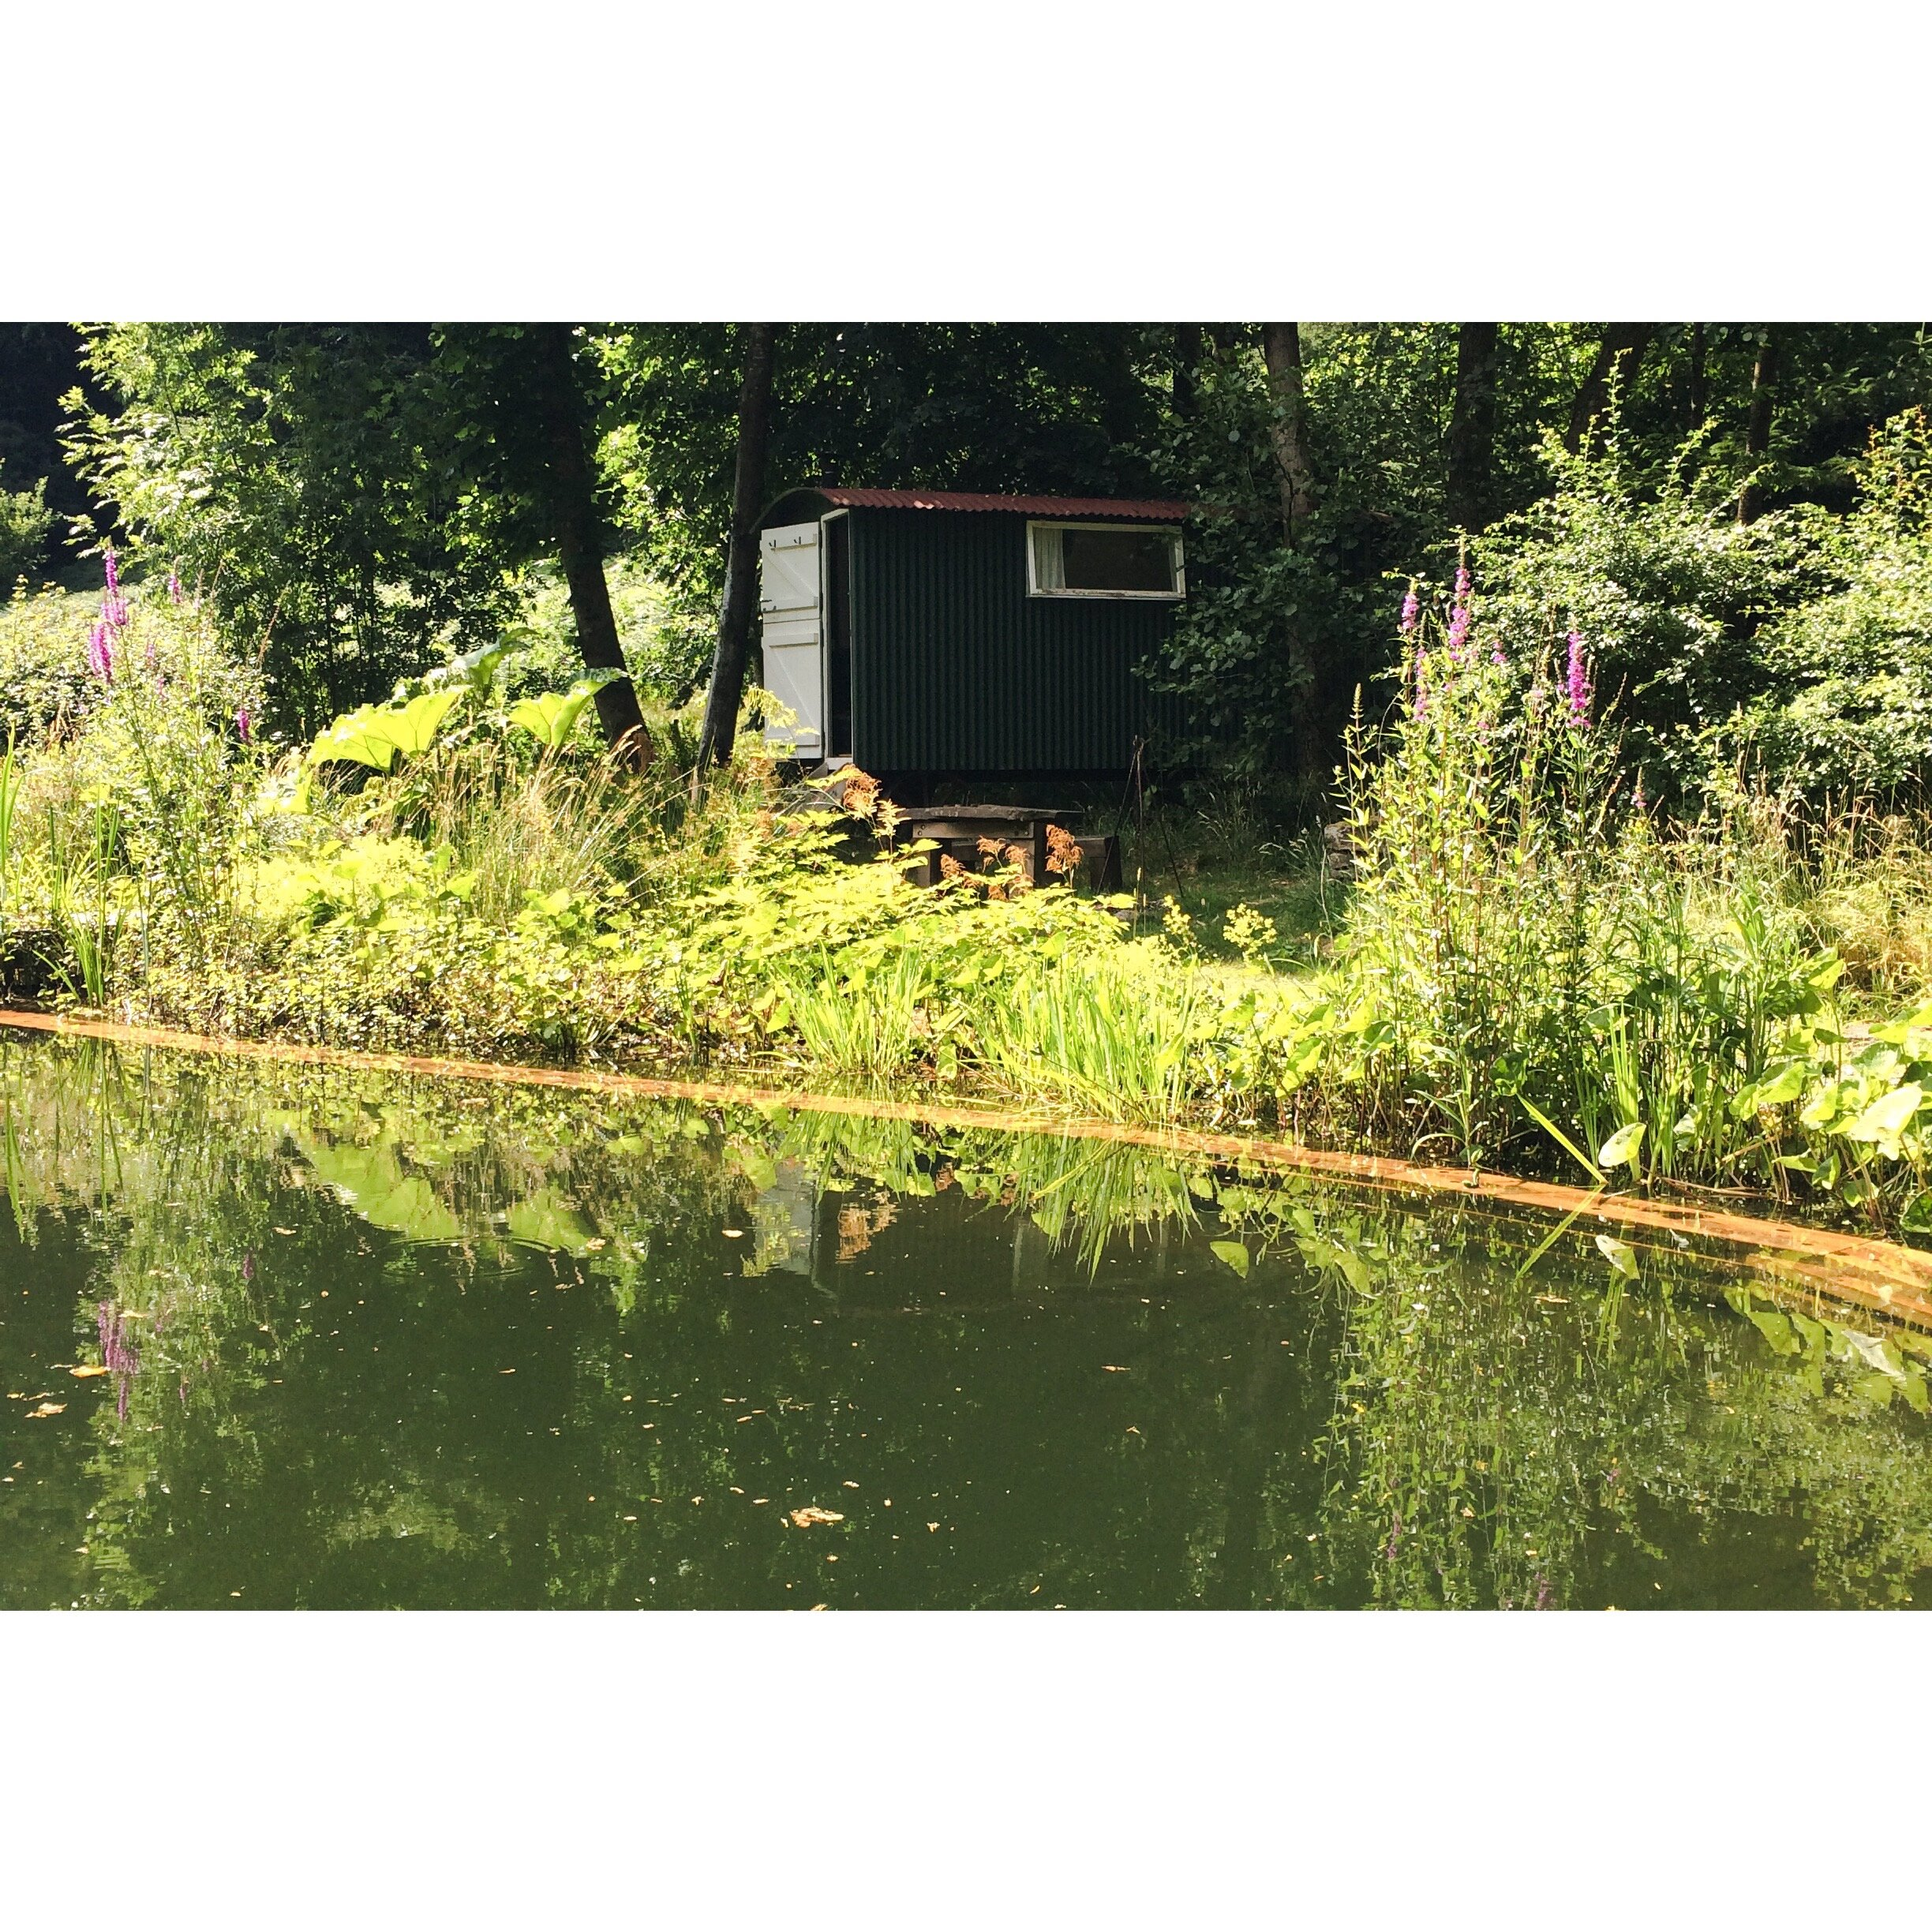 Swimming Pond and Shepard Hut at the Garden.